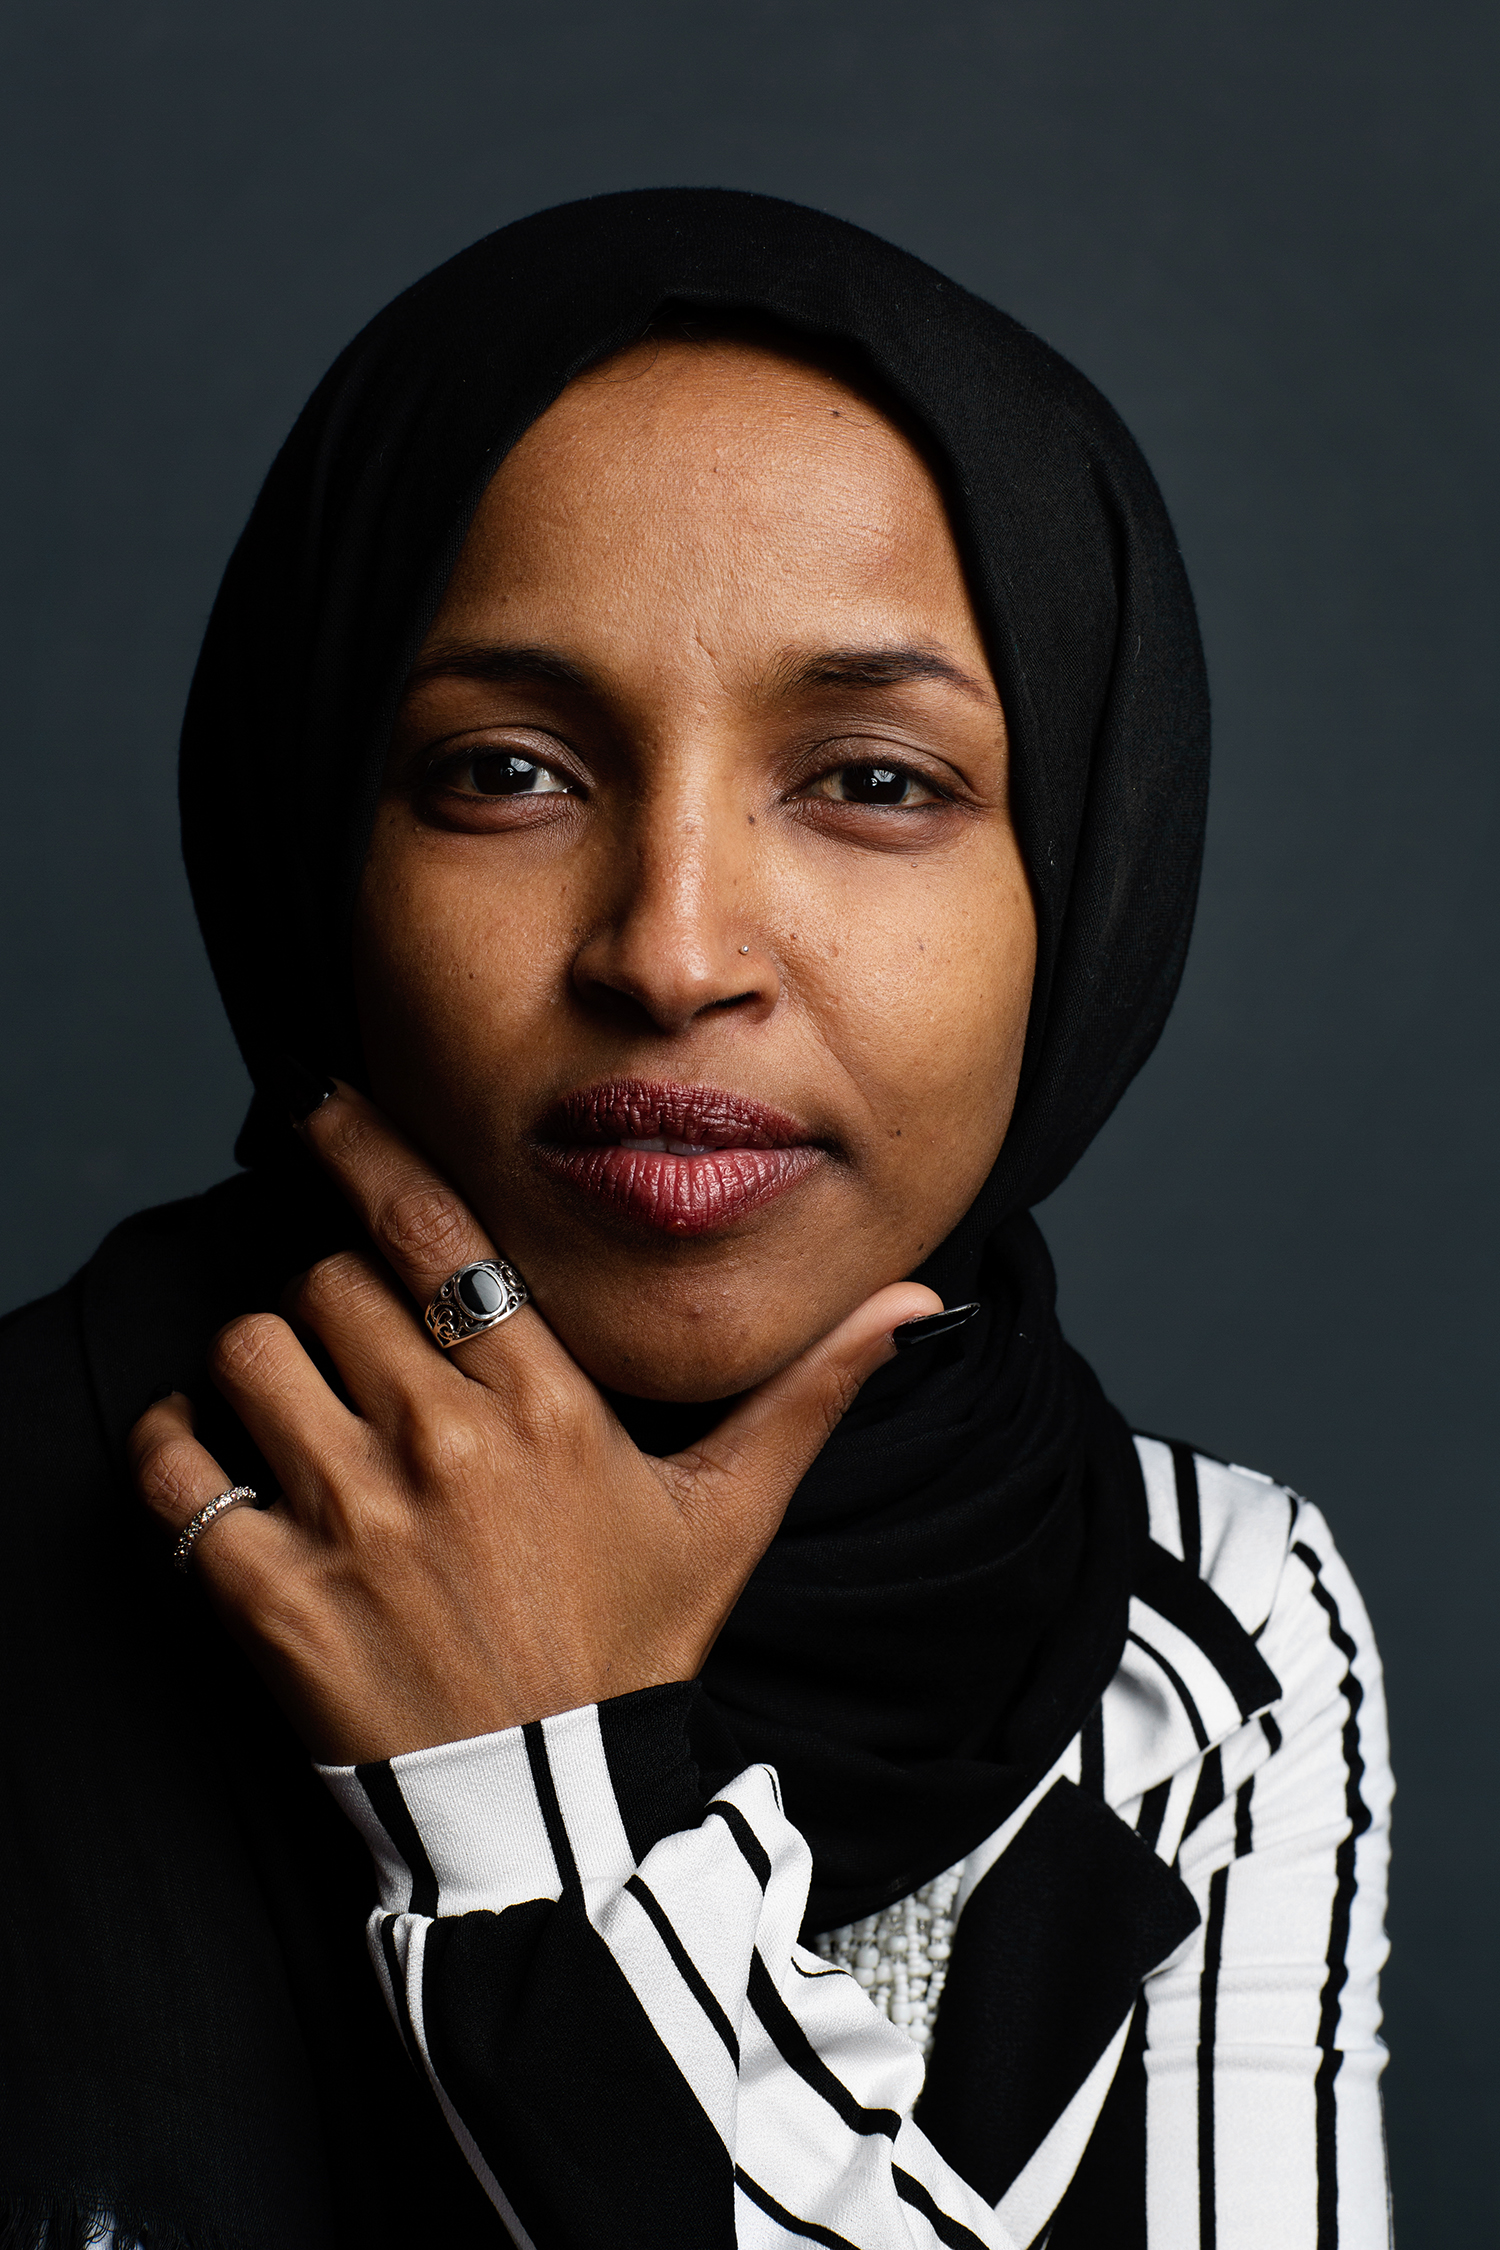 Ilhan Omar *****HOLD FOR WOMEN IN CONGRESS PROJECT****Ilhan Abdullahi Omar is a Somali American politician from Minnesota. In 2016, she was elected to the Minnesota House of Representatives as a member of the Democratic–Farmer–Labor Party, making her the first Somali American elected to legislative office in the United States. On November 6, 2018, she became the first Somali American elected to the United States Congress. Along with Rashida Tlaib, she was one of the first two Muslim women elected to Congress.[4] Omar is also the first Somali American elected to Congress, and the first woman of color to serve as a U.S. Representative from MinnesotaElizabeth D. Herman for The New York Times                              NYTCREDIT: Elizabeth D. Herman for The New York Times